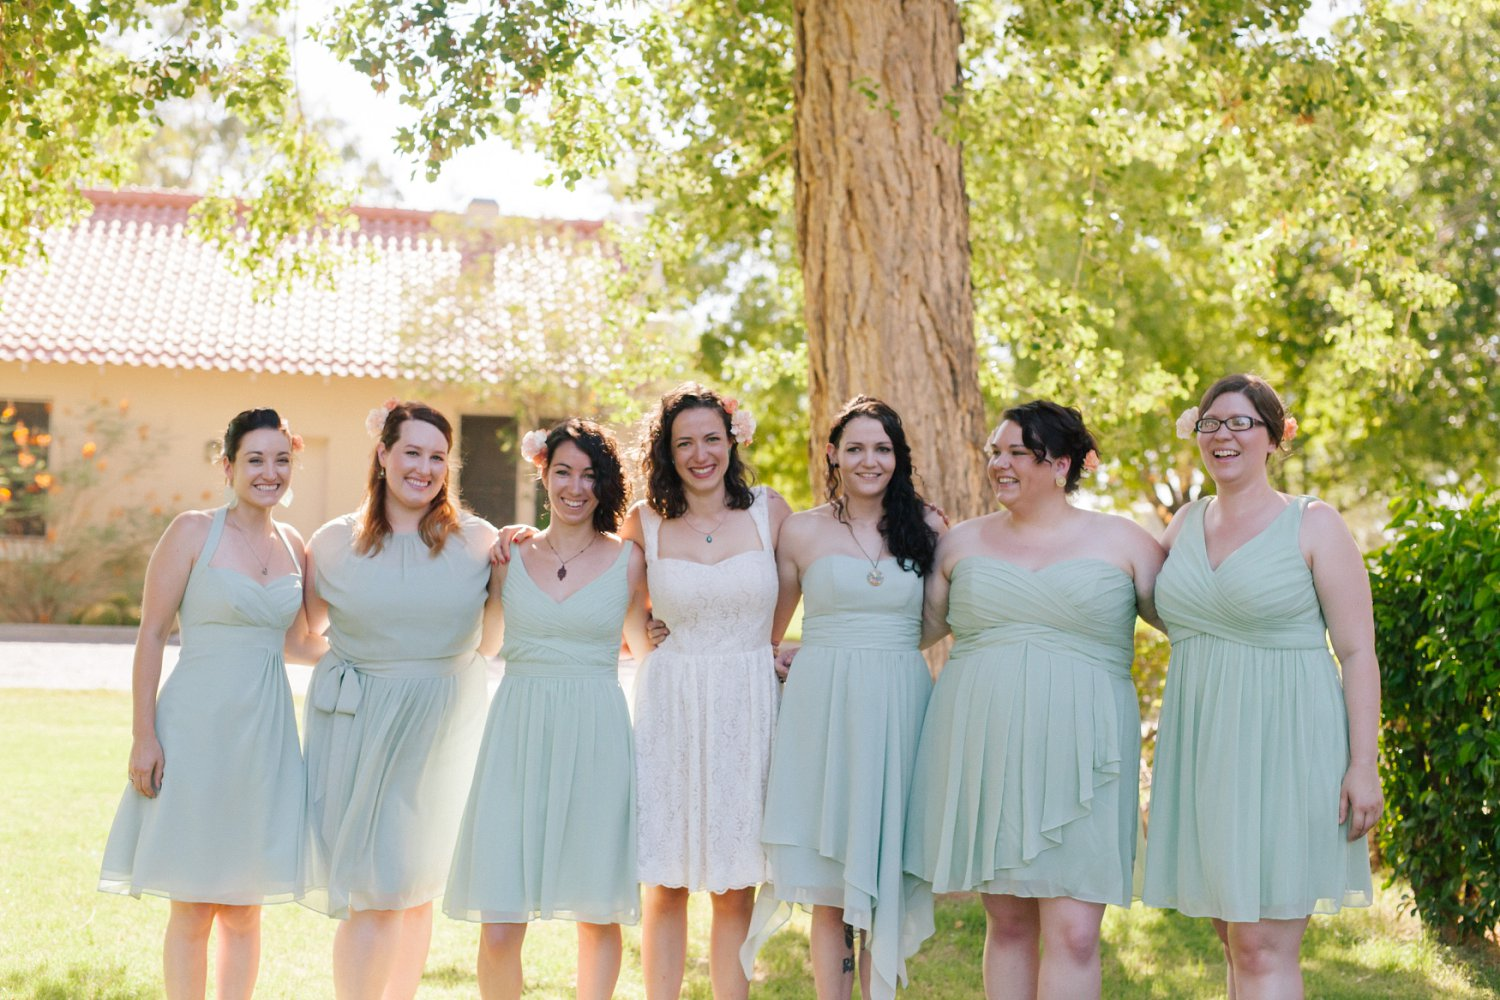 sage bridesmaids dresses Phoenix AZ Encanto Park wedding